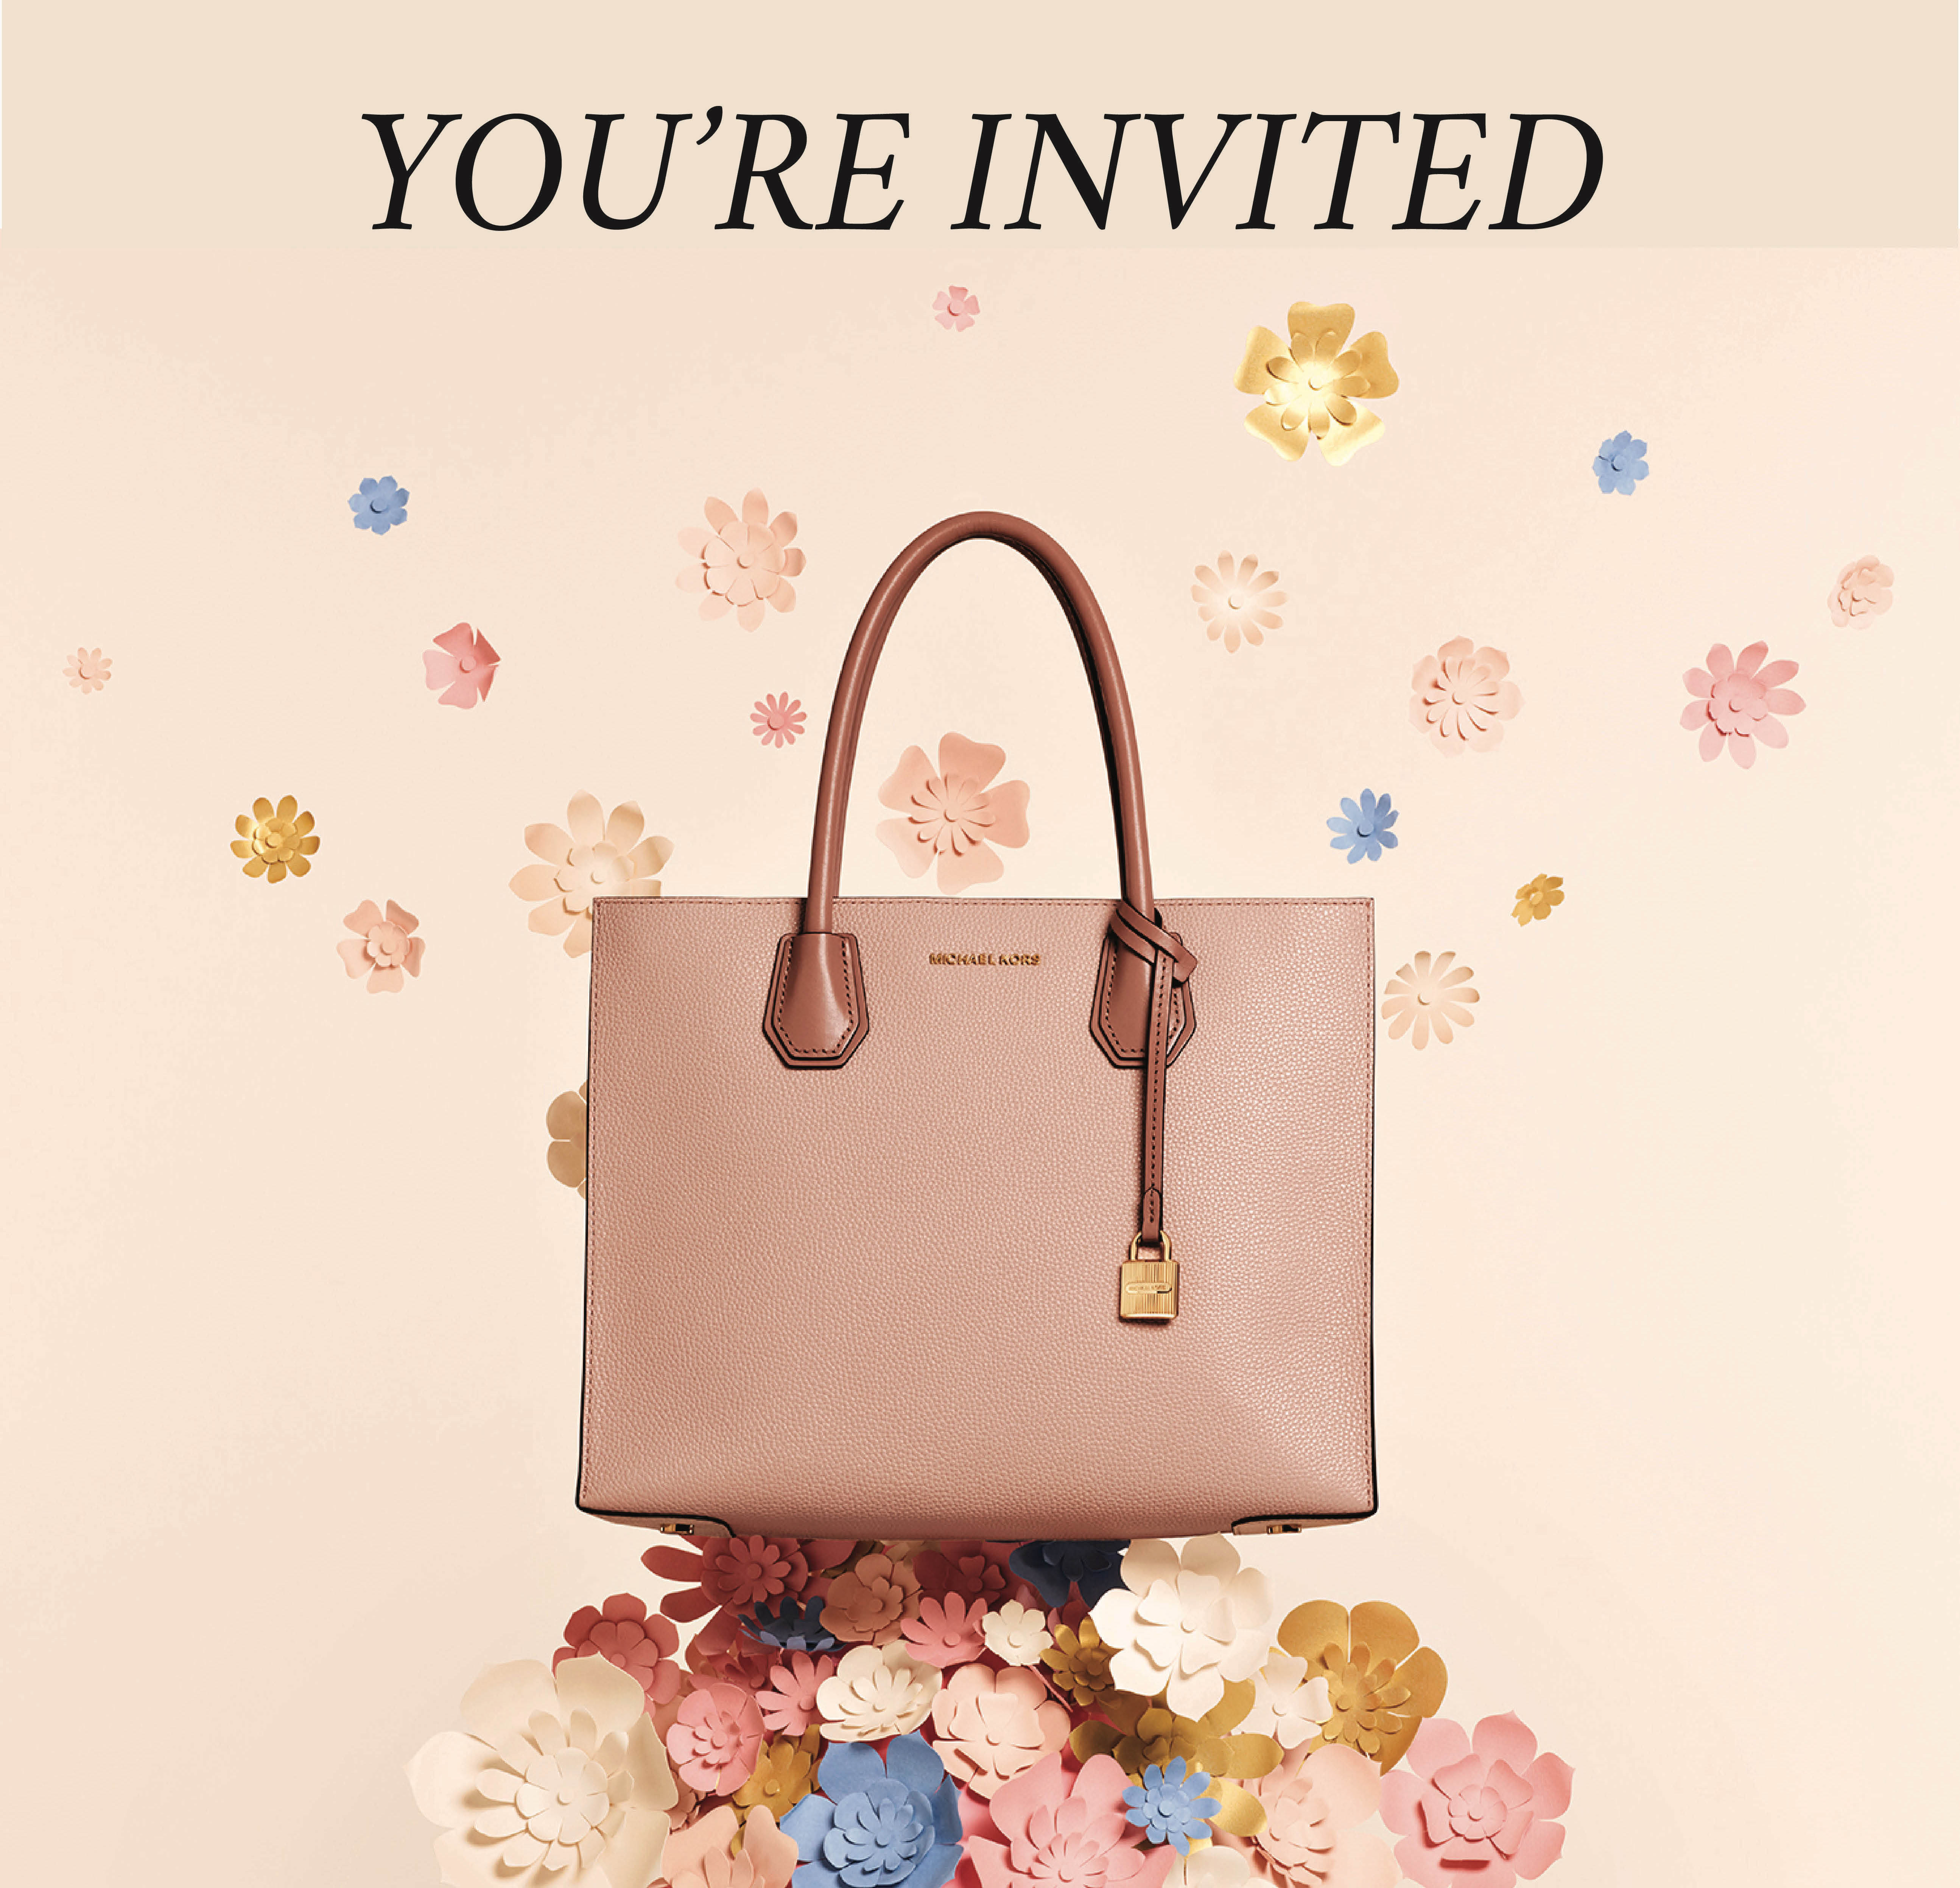 0f4c8e9770fa Outlets at Anthem     Celebrate Mom with Michael Kors